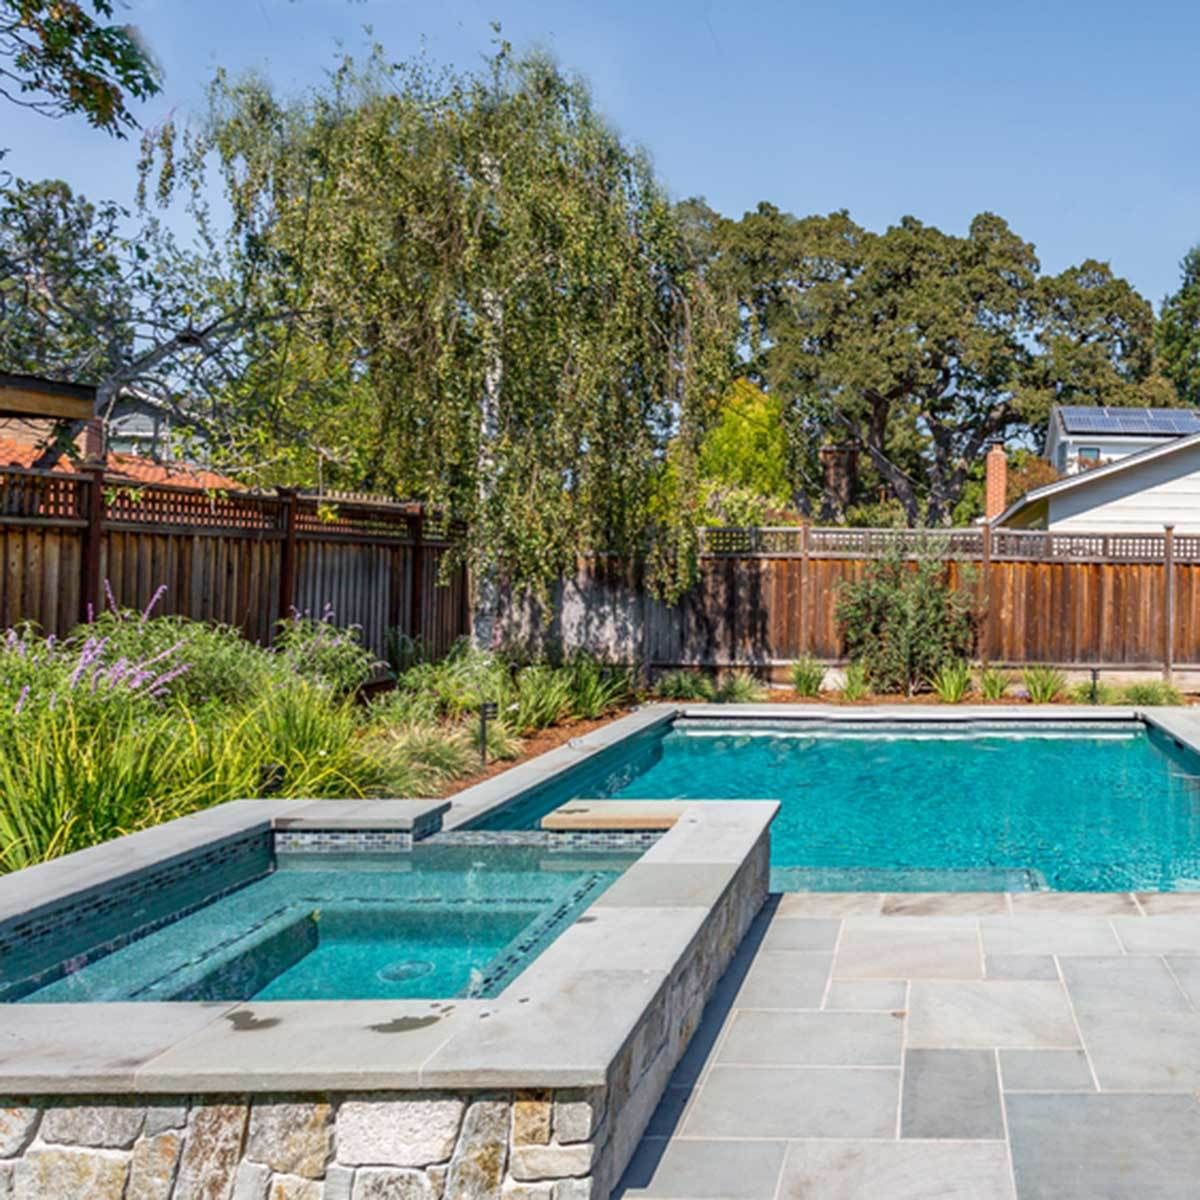 45 Amazing Small Backyard Ideas On A Budget For Small Yards Swimming Pools Backyard Backyard Pool Landscaping Pool Landscaping